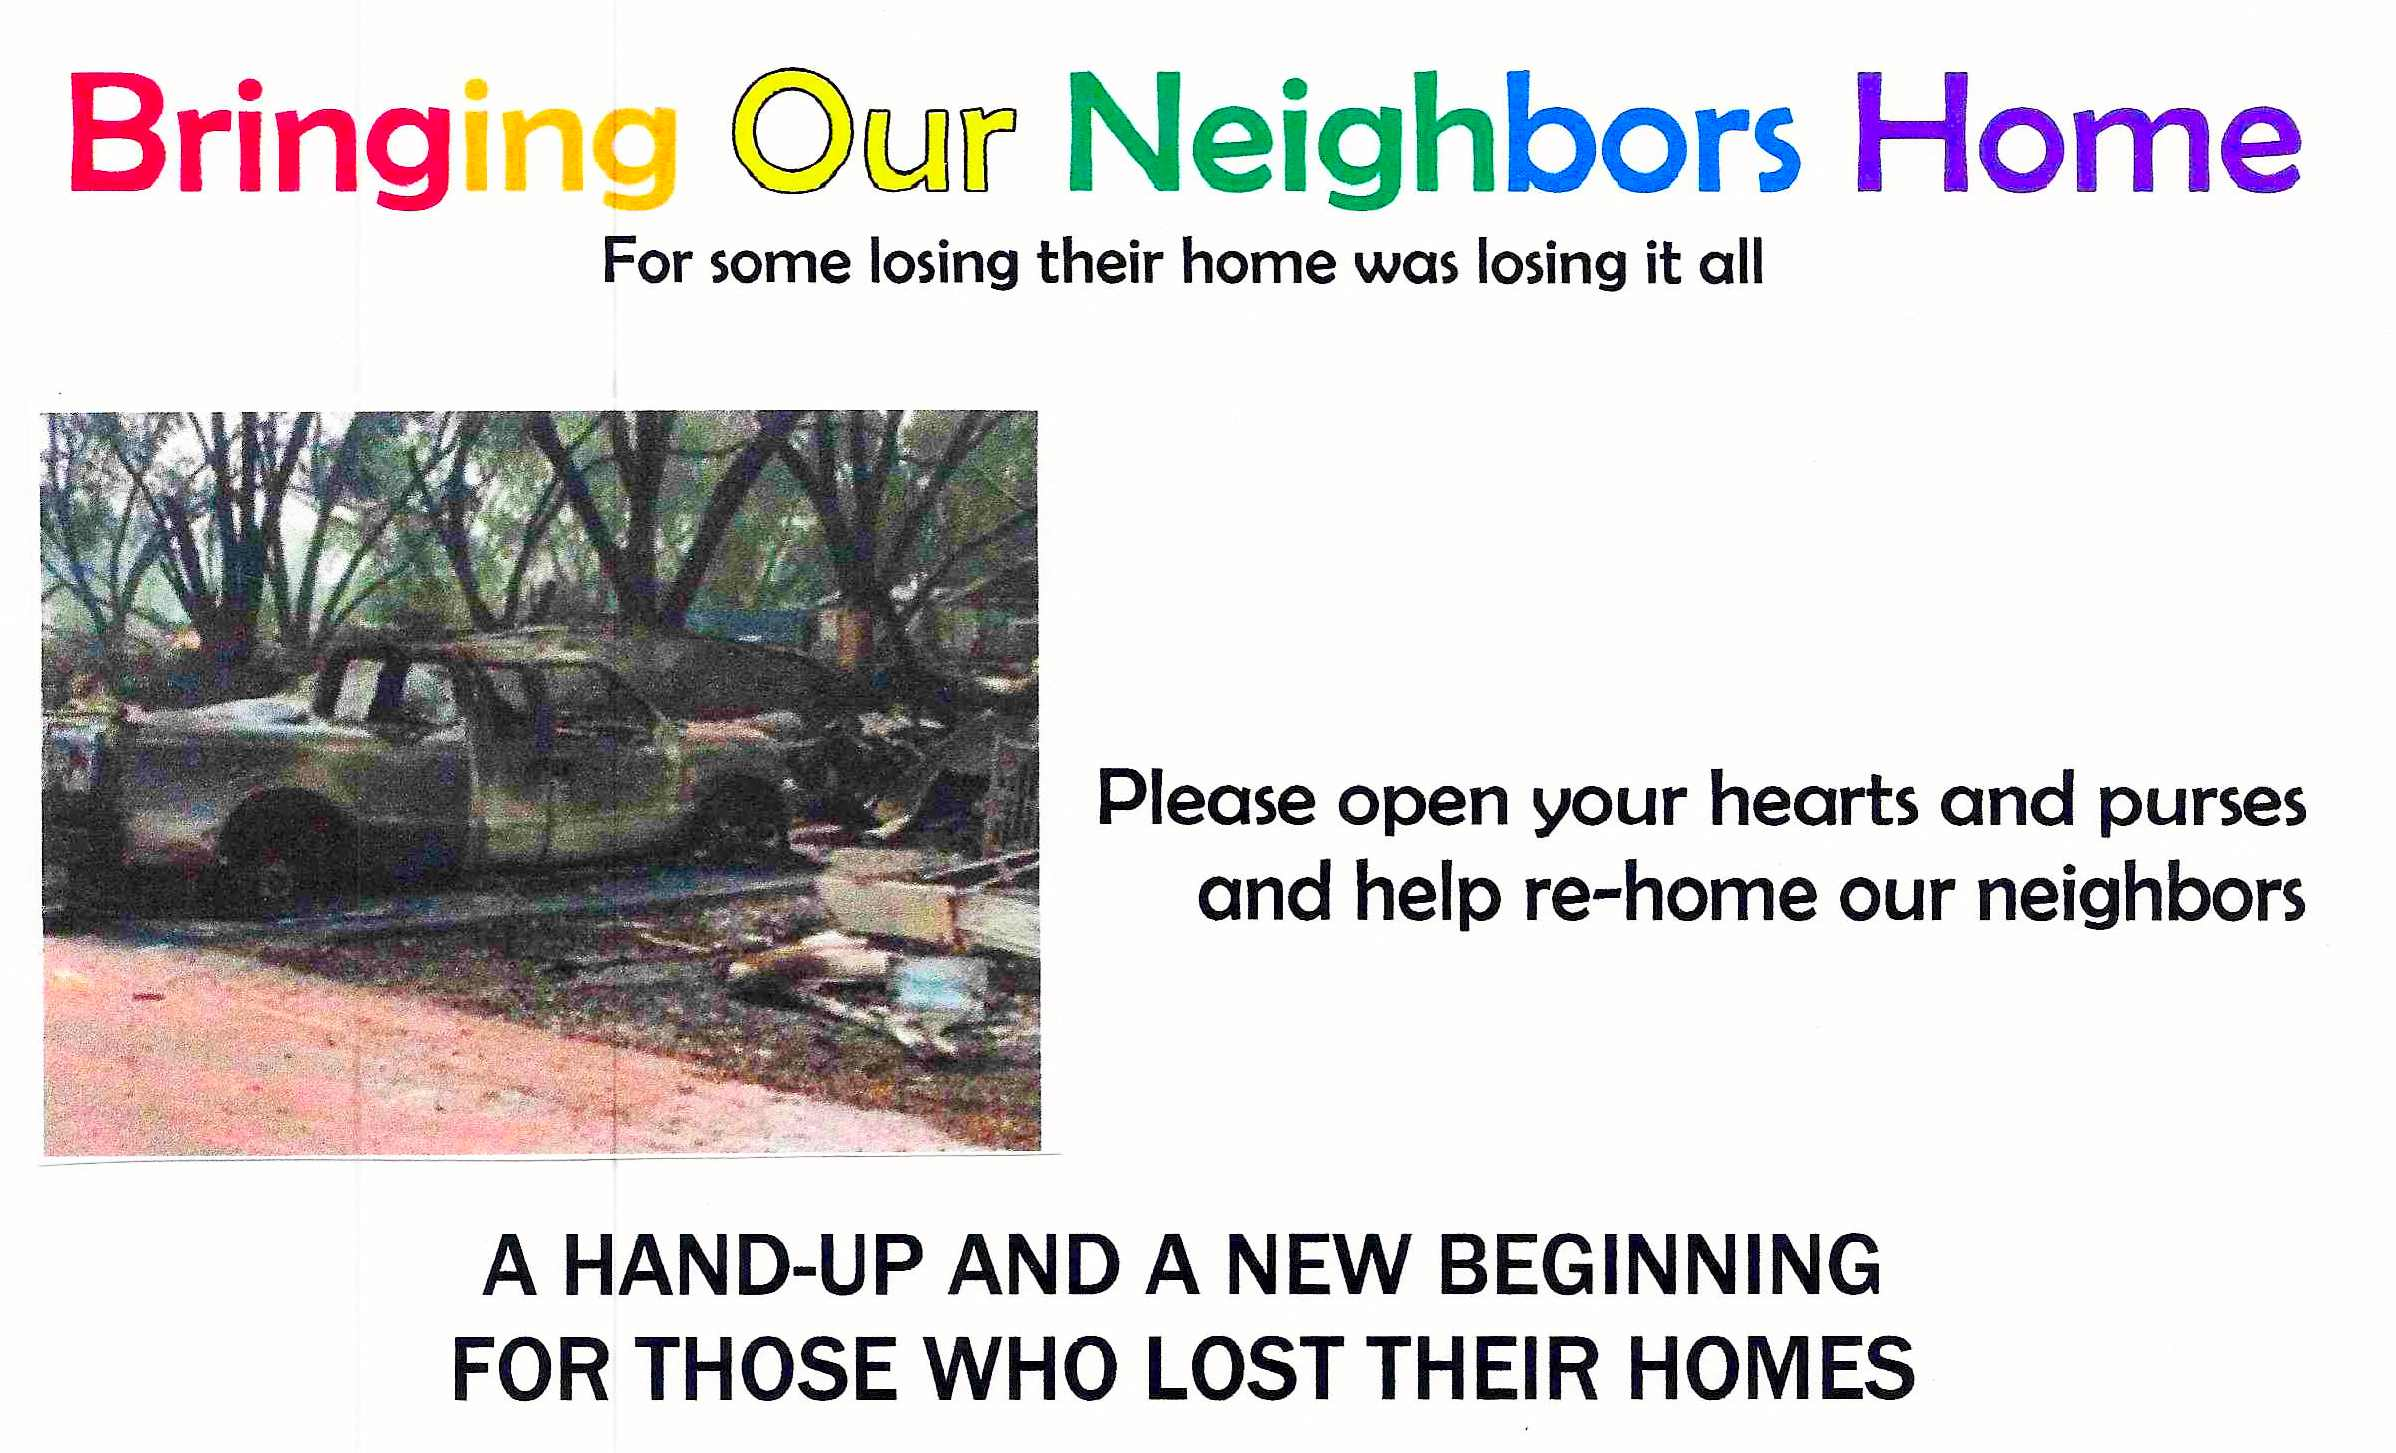 Bringing our neighbors home